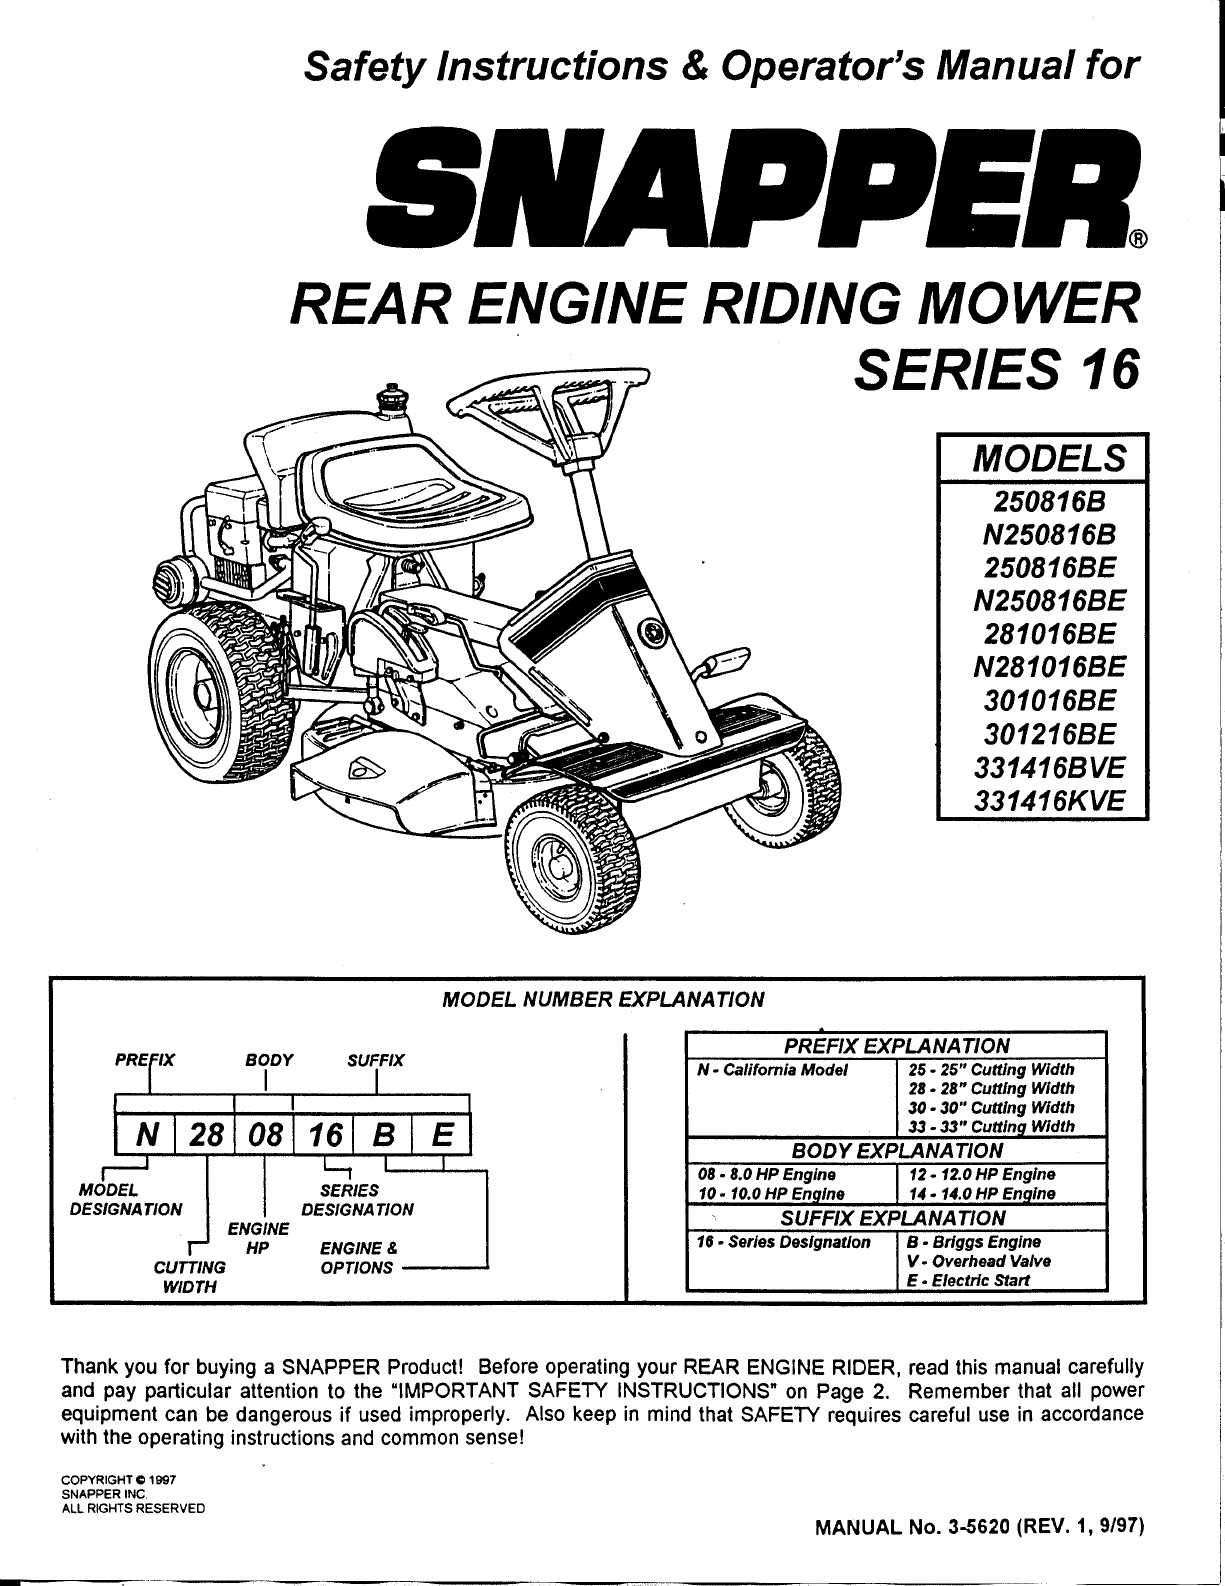 Old Snapper Riding Mower Manuals Wiring Harness